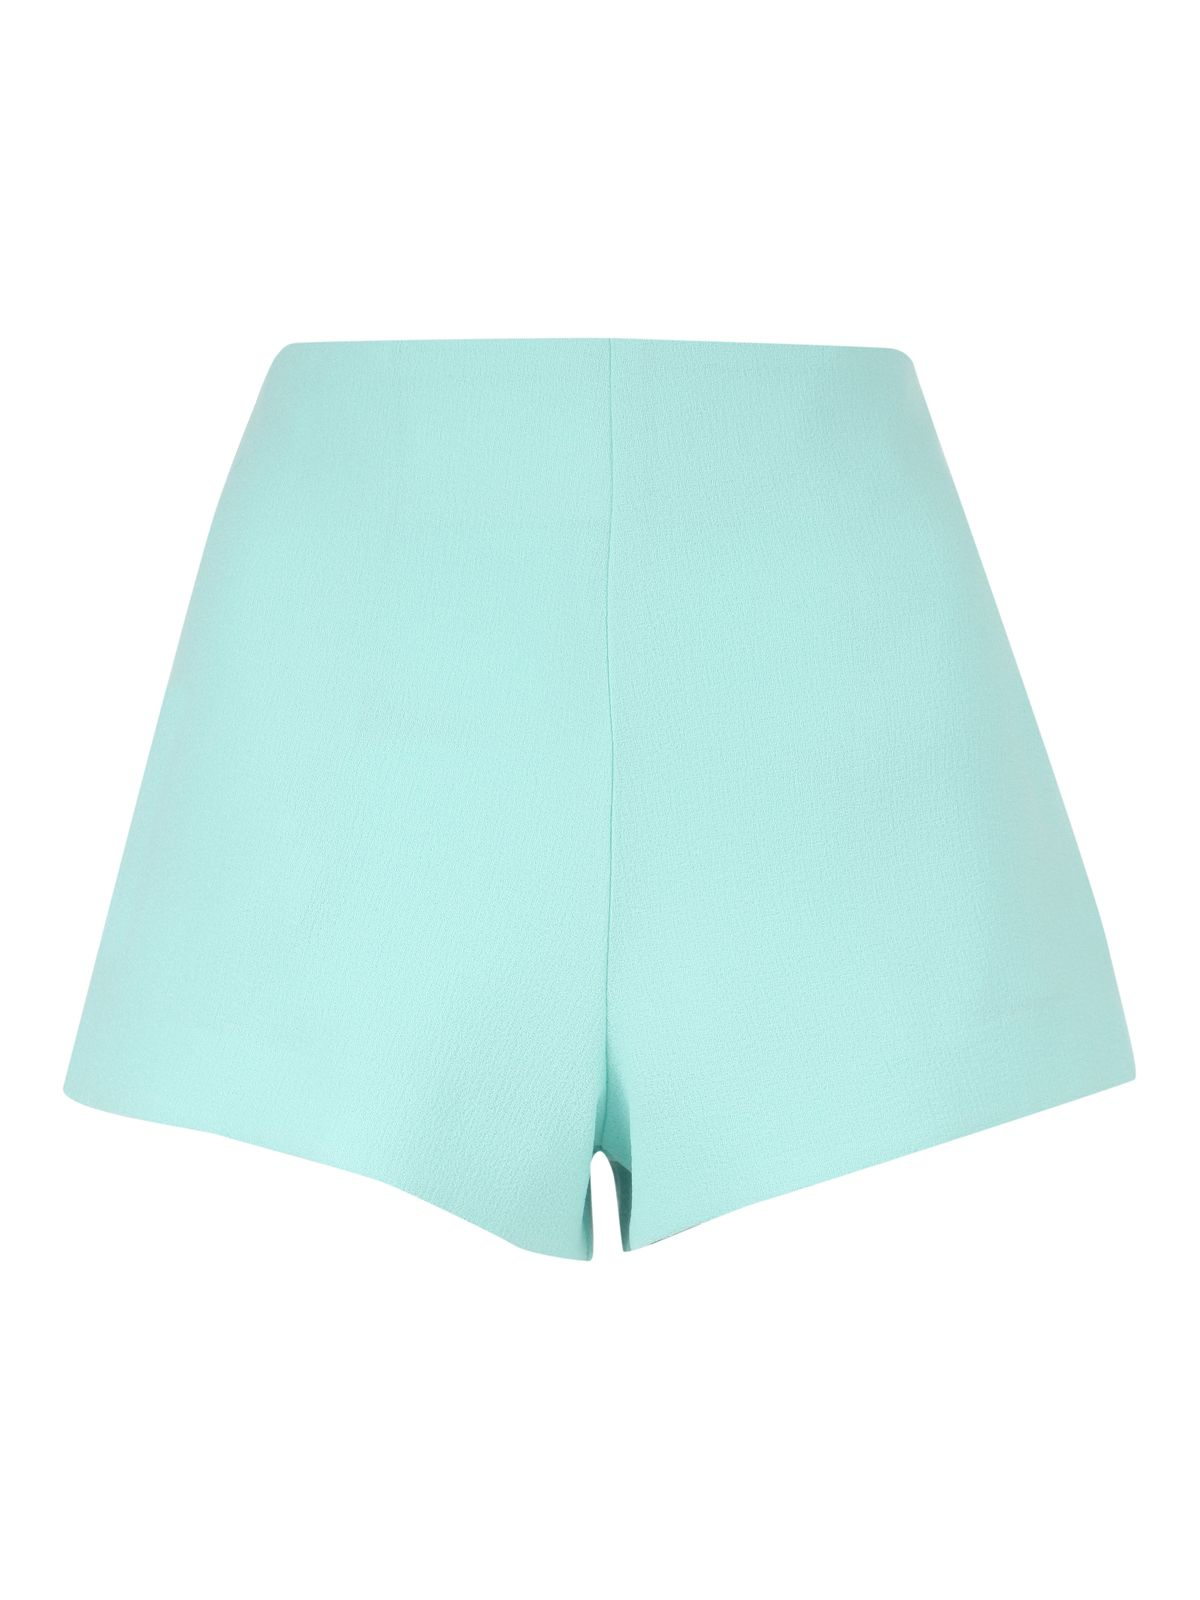 High Waist Formal Shorts